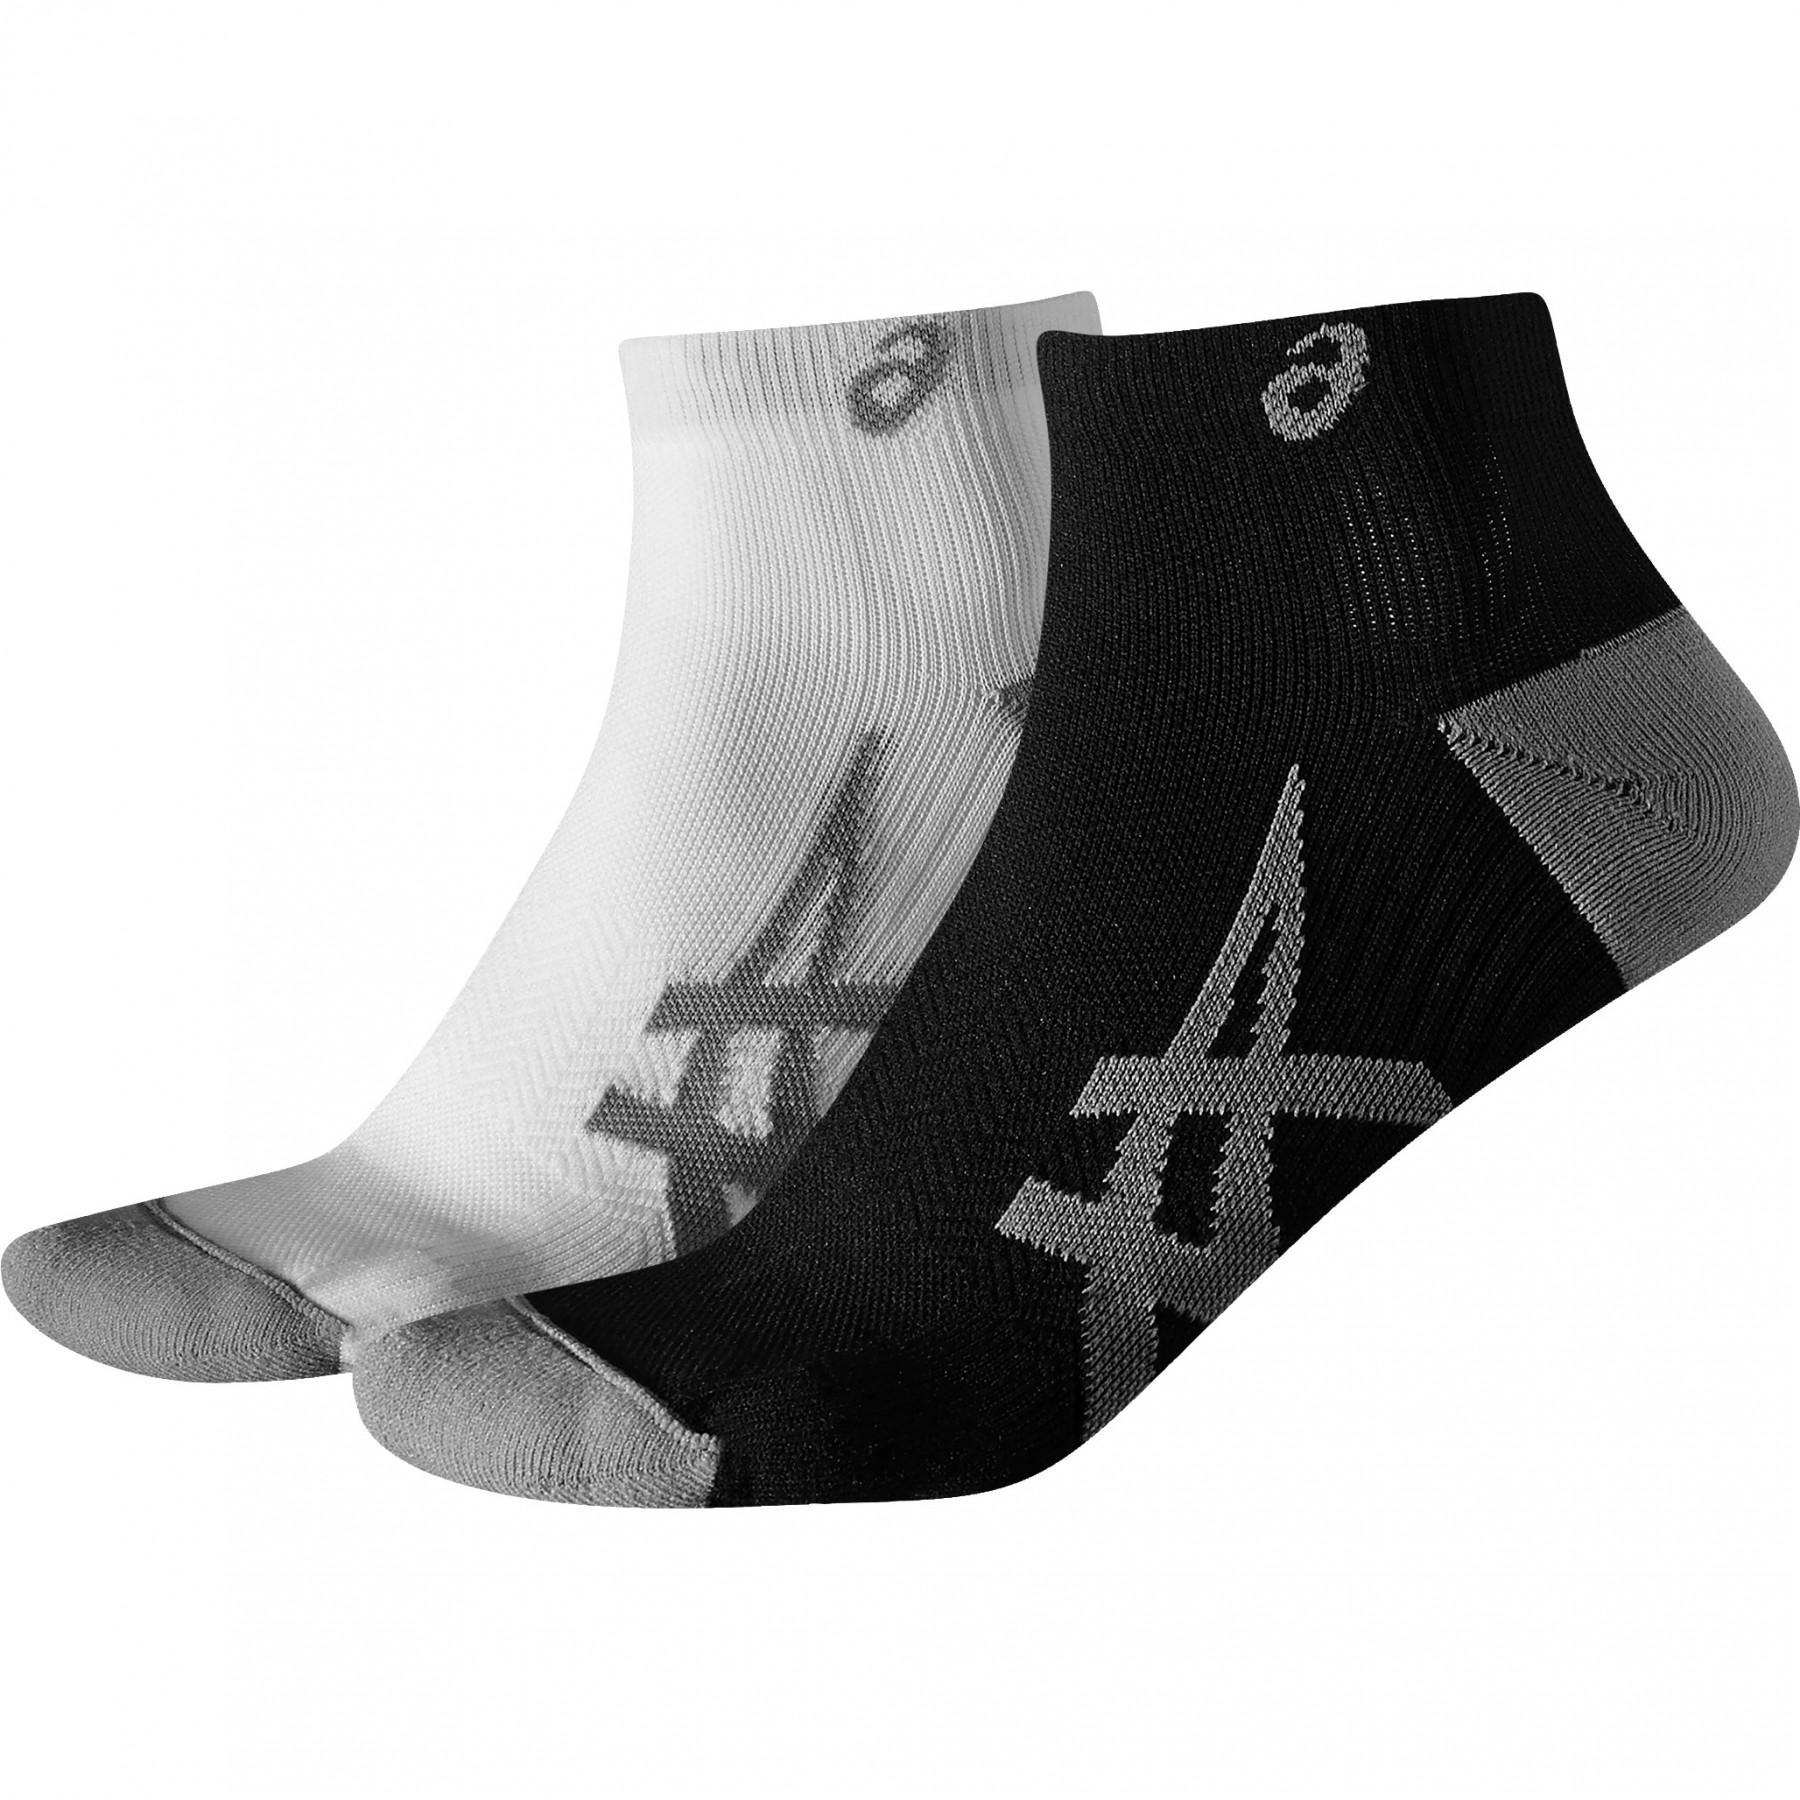 Pack of 2 Asics Lightweight socks